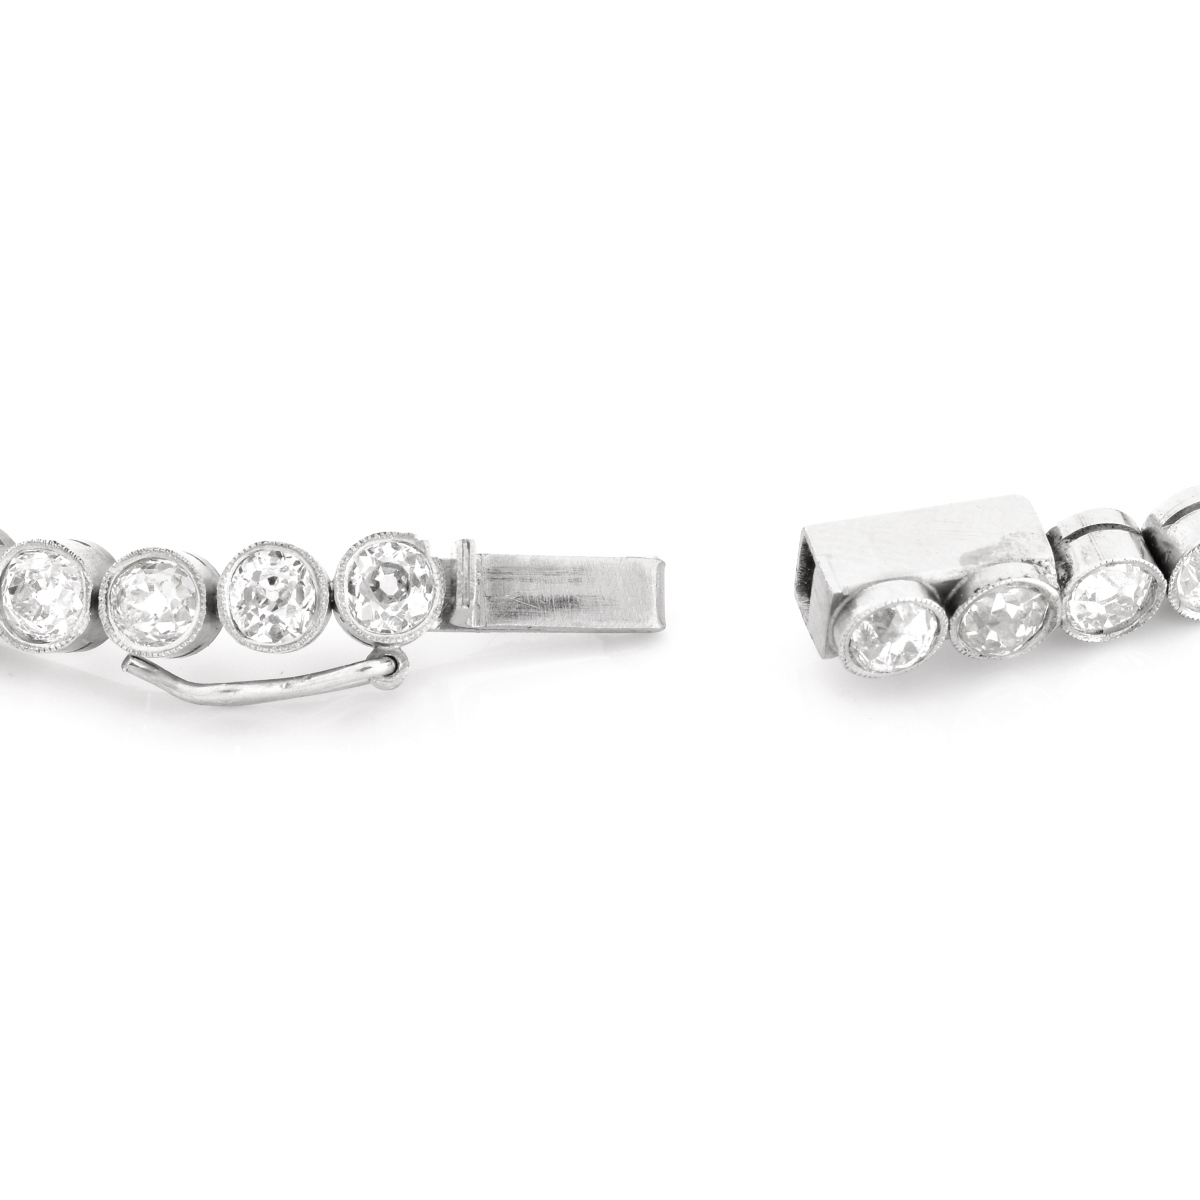 14.0 Carat Diamond and Platinum Bracelet